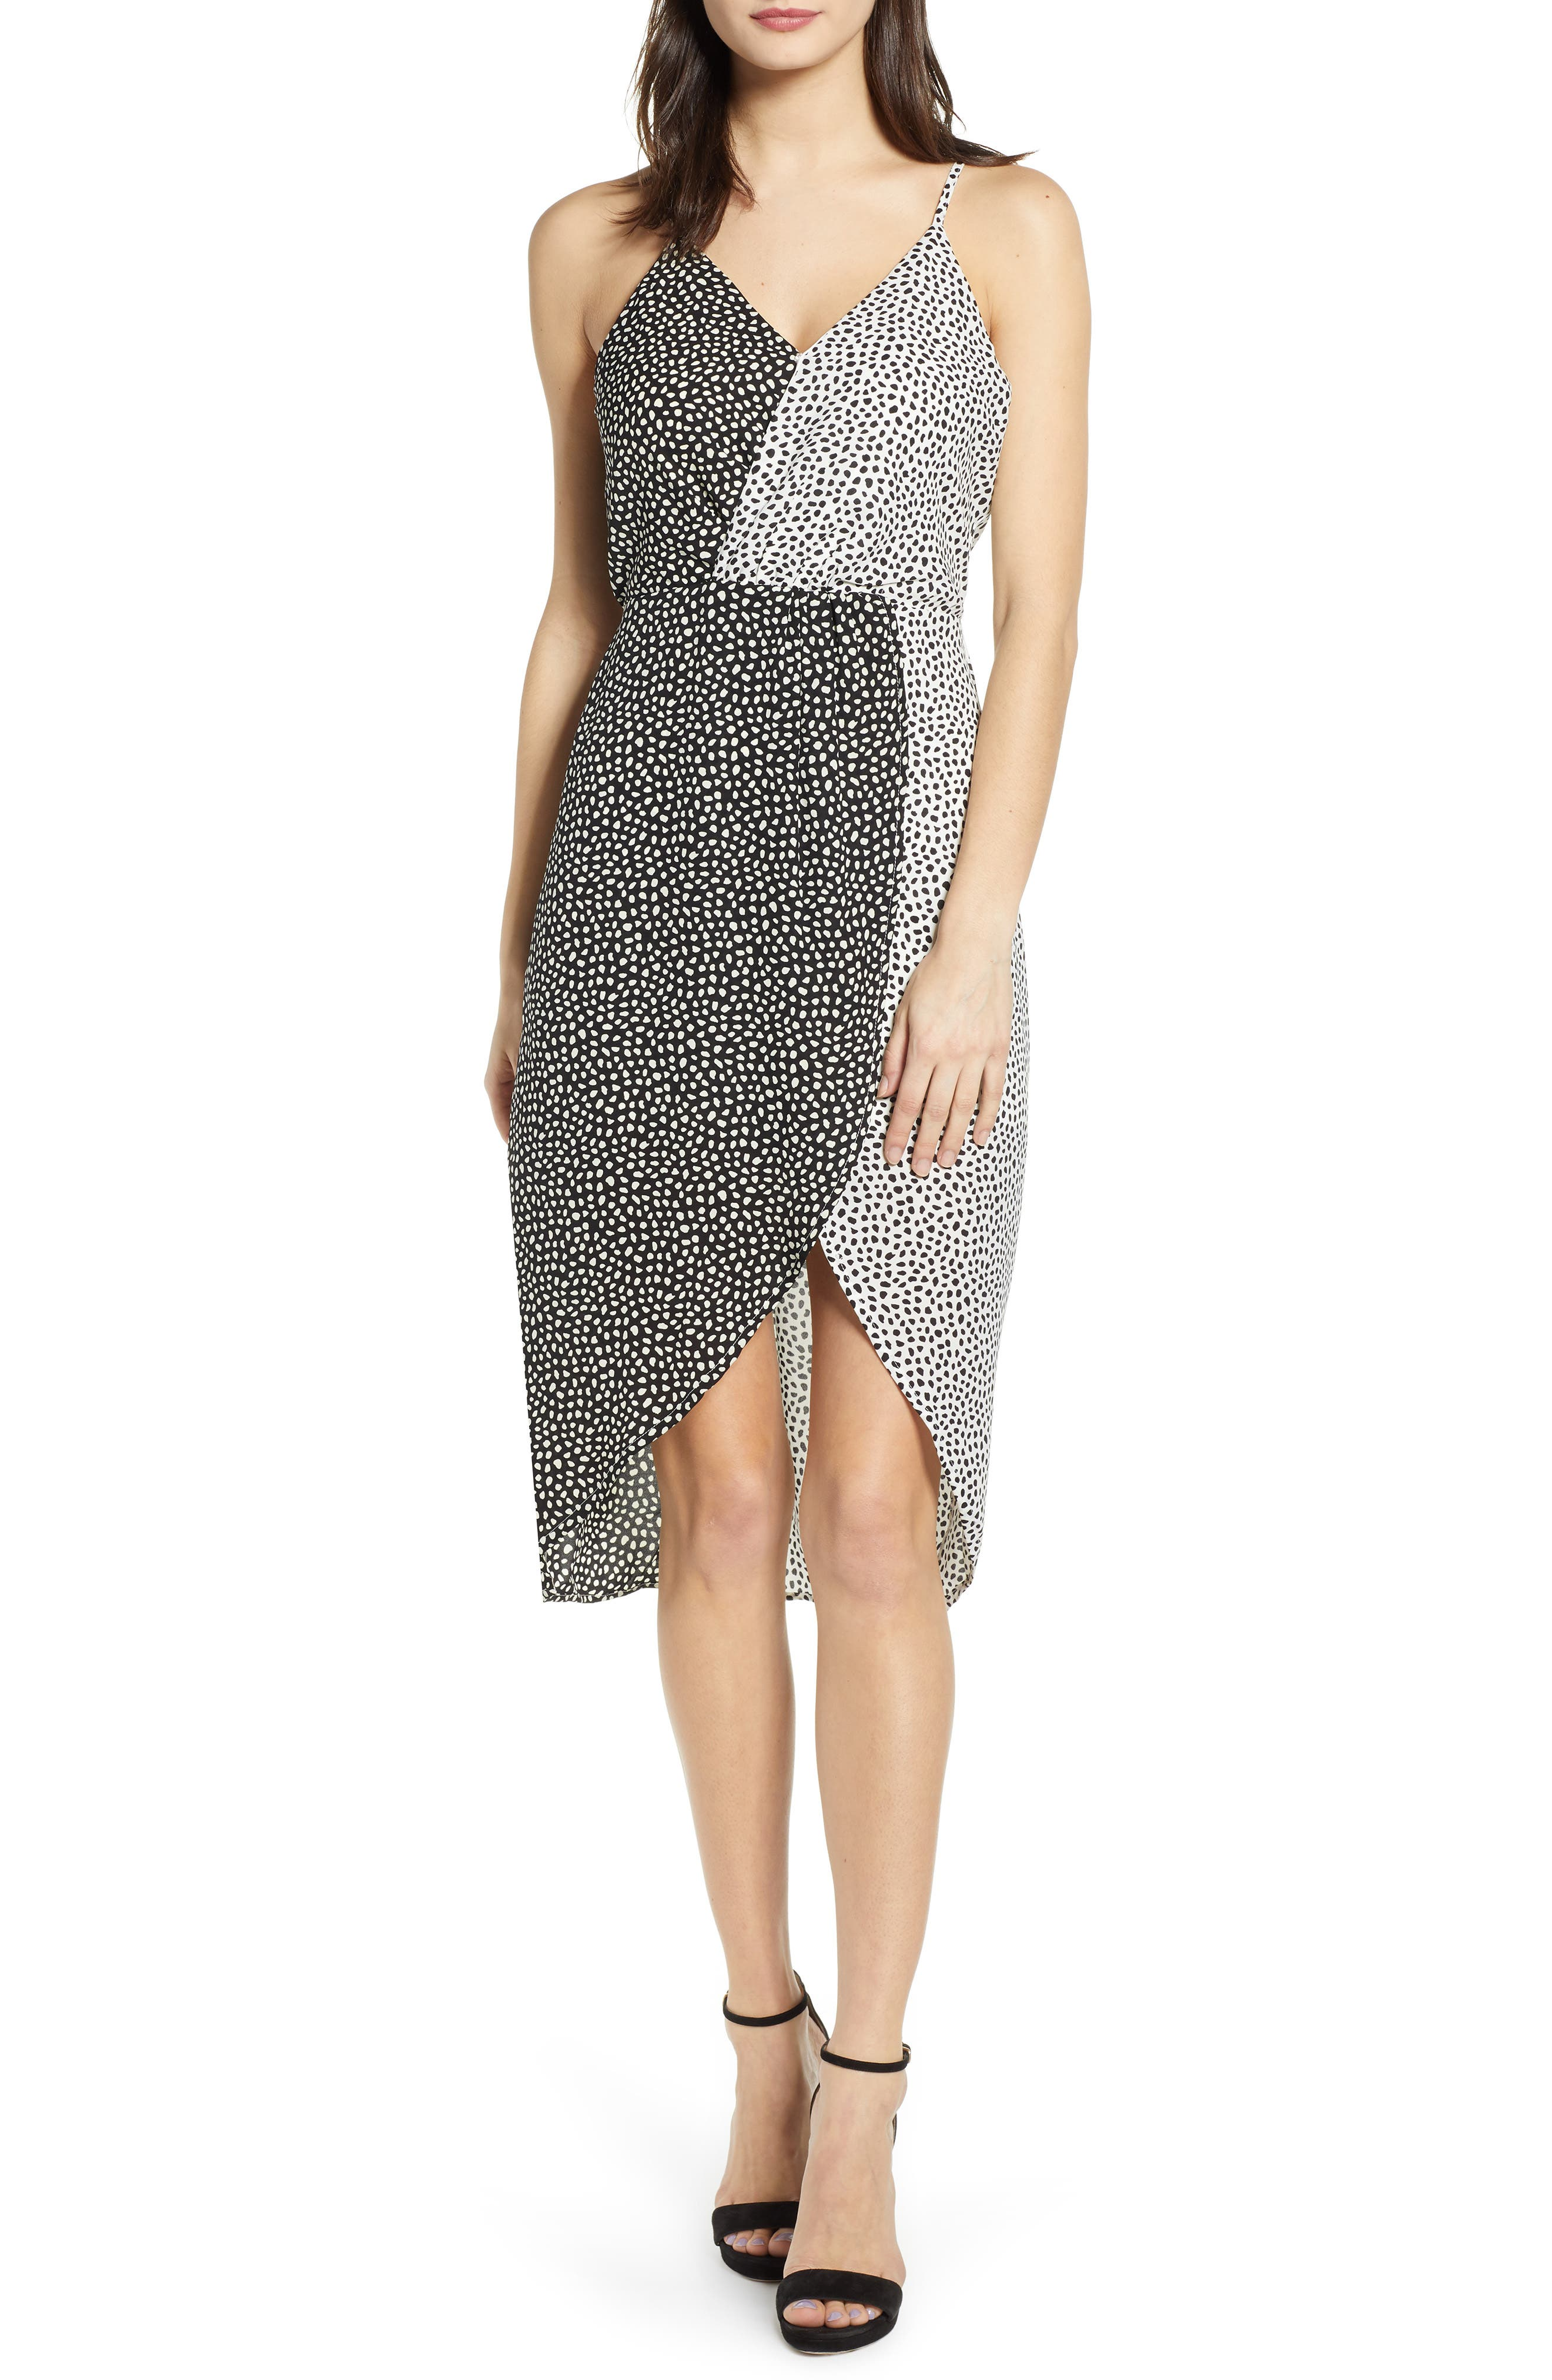 J.o.a. Contrast Print Dress, Black